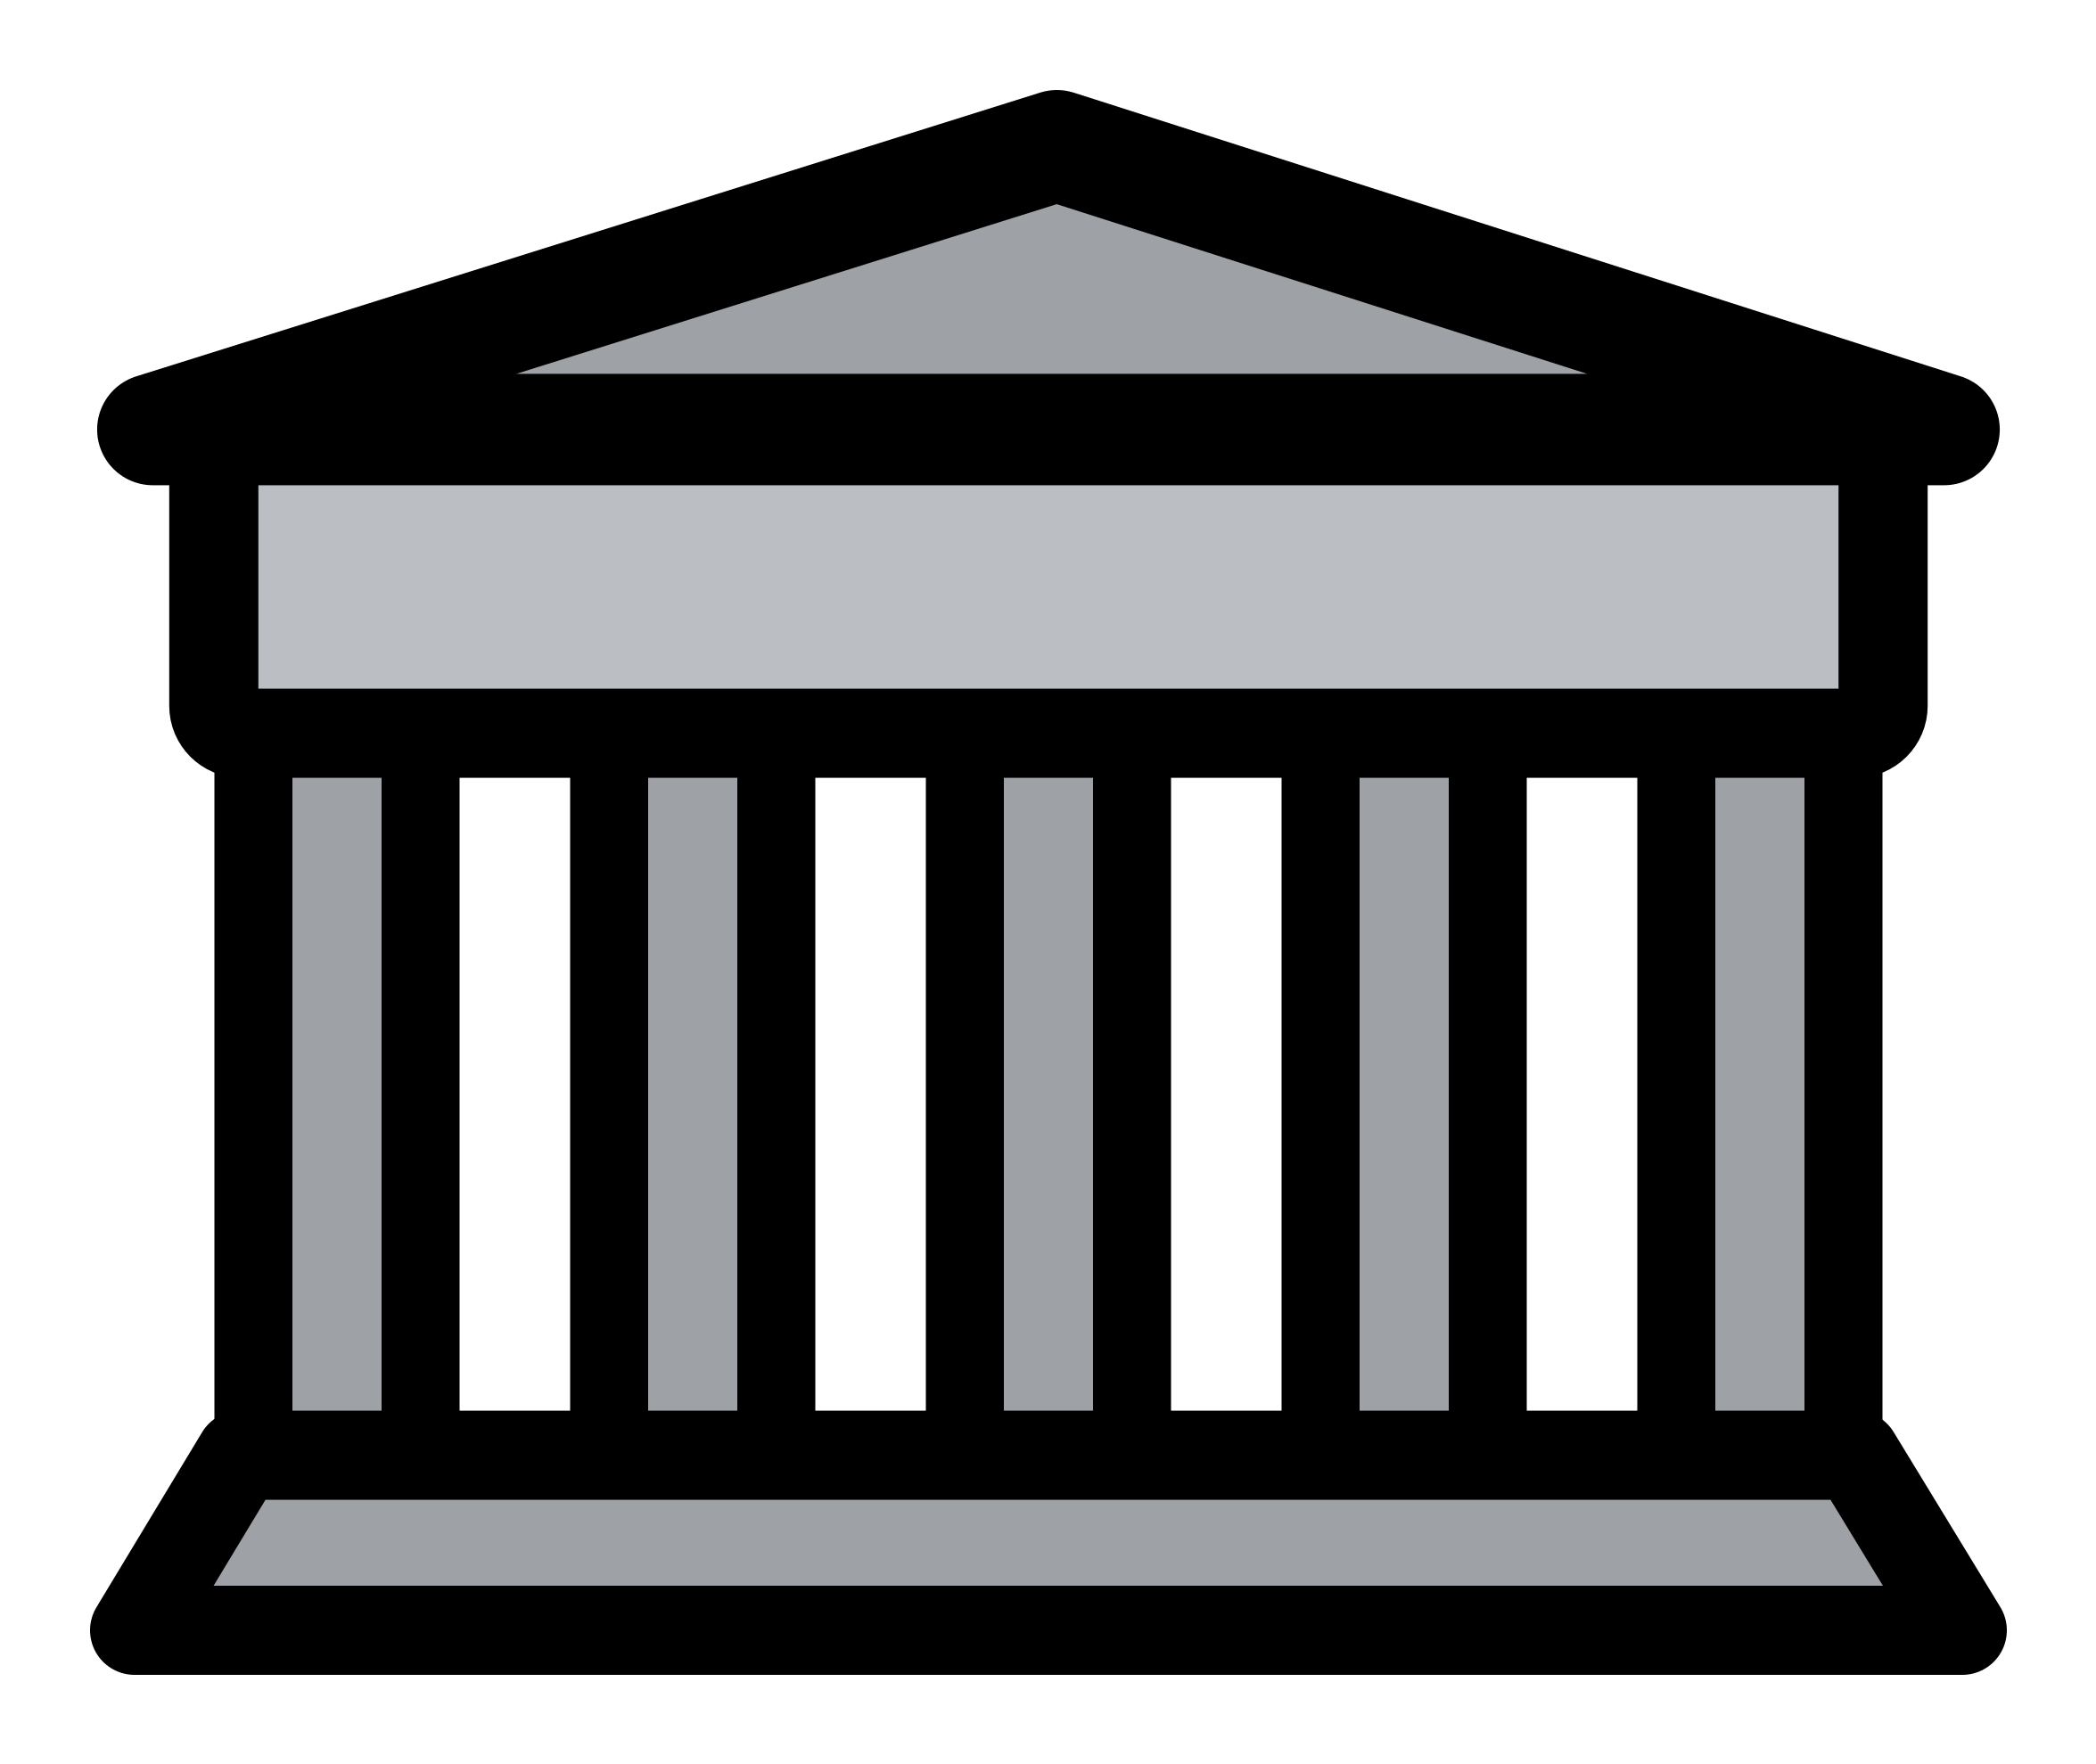 Bank Clipart Free For Download.